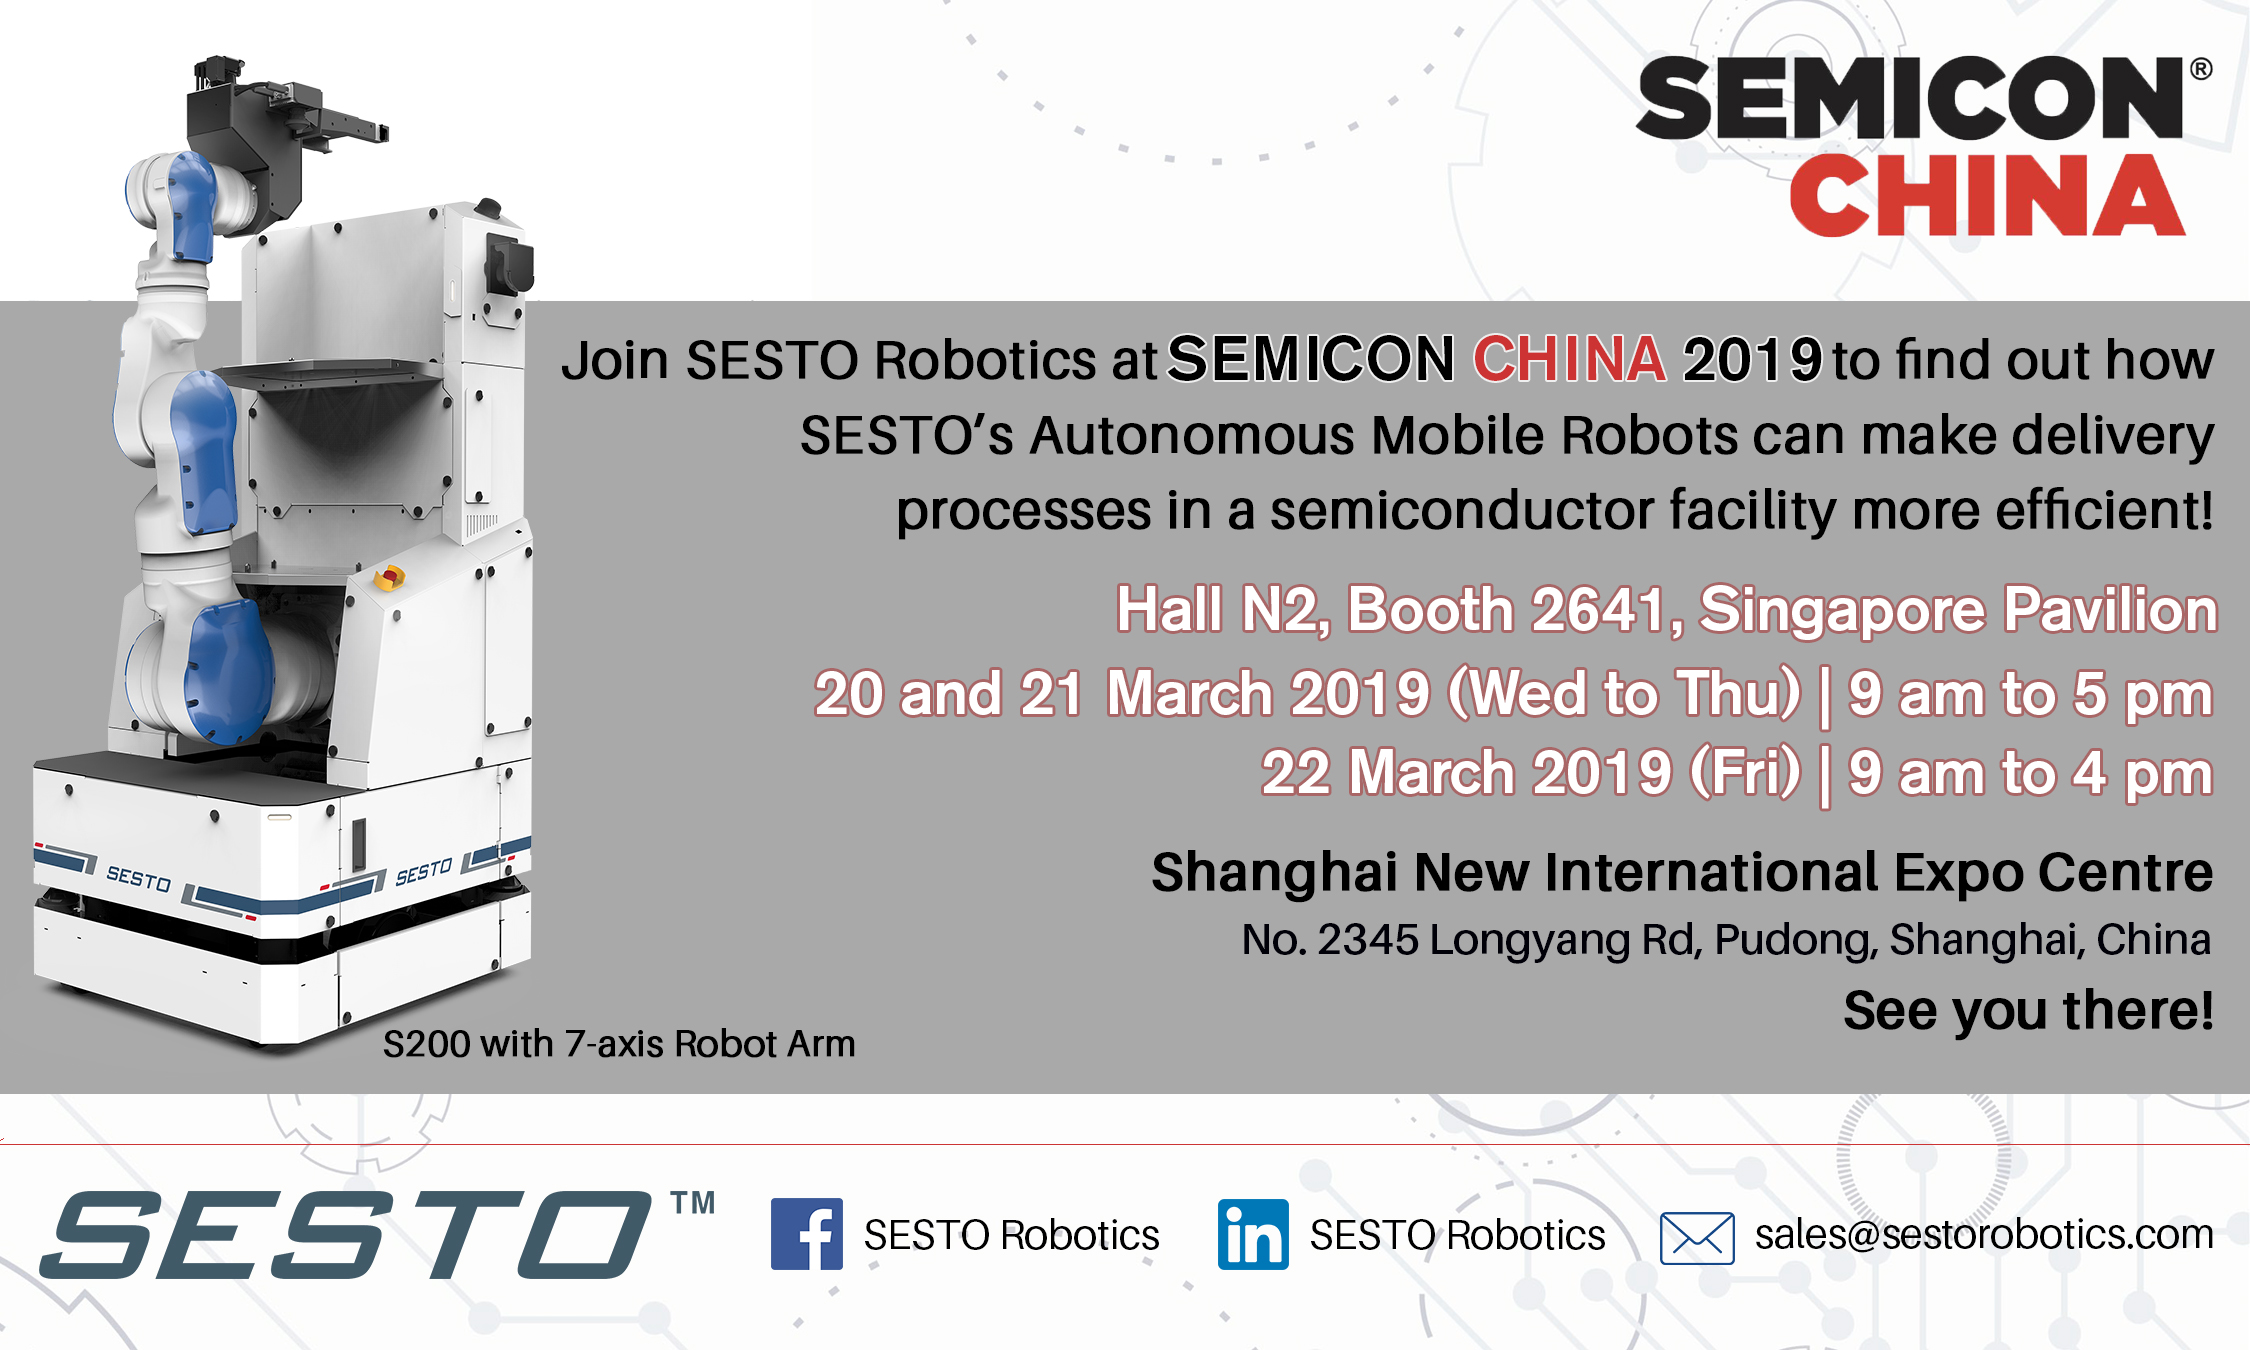 SESTO Robotics invites you to SEMICON China 2019!